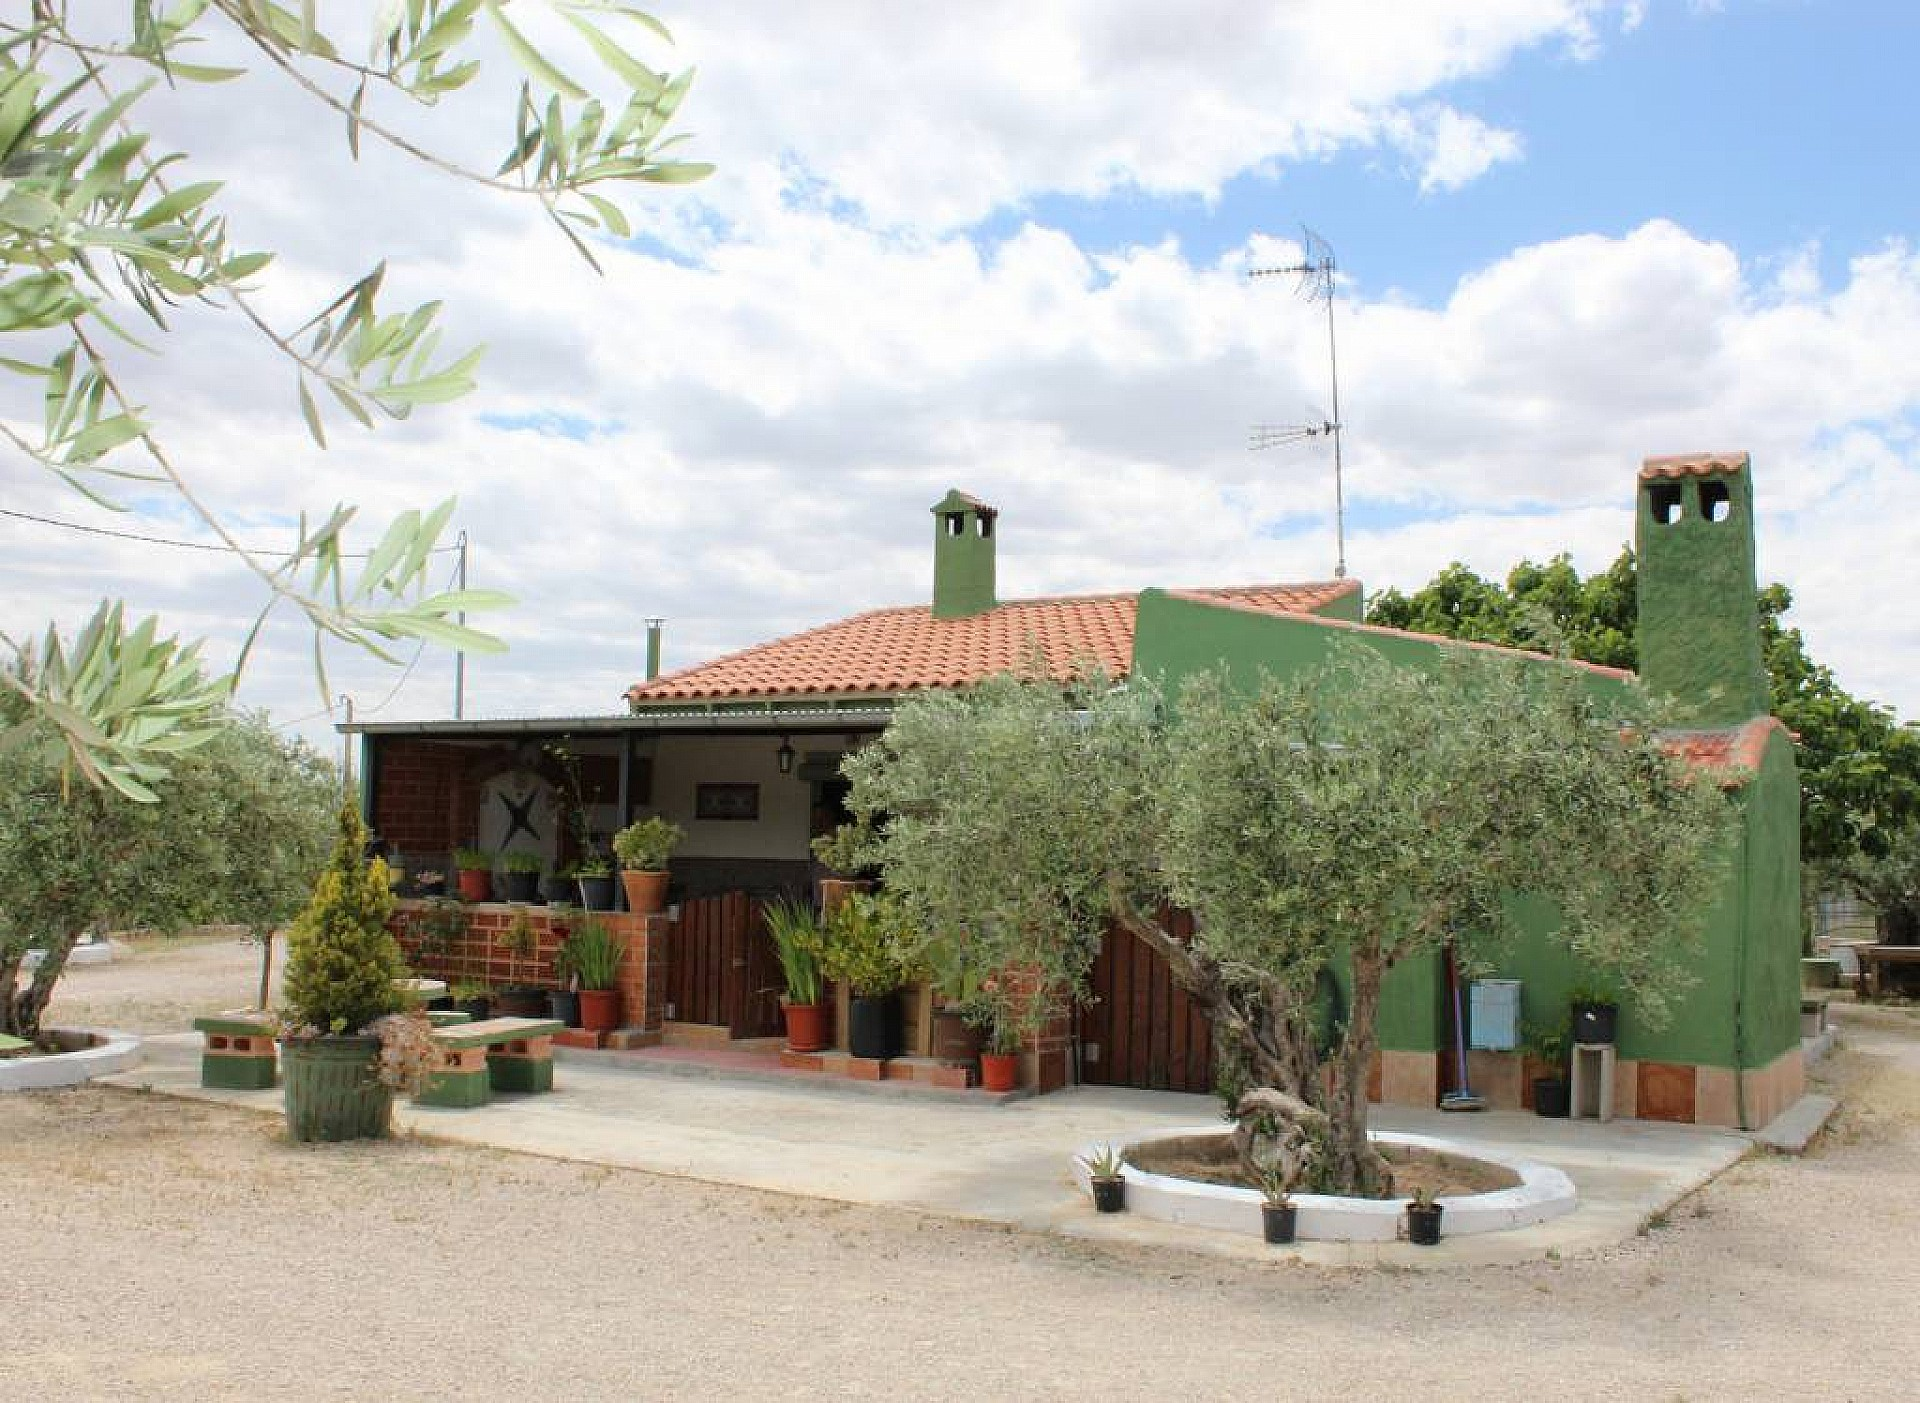 For sale: 3 bedroom finca in Yecla, Costa Calida